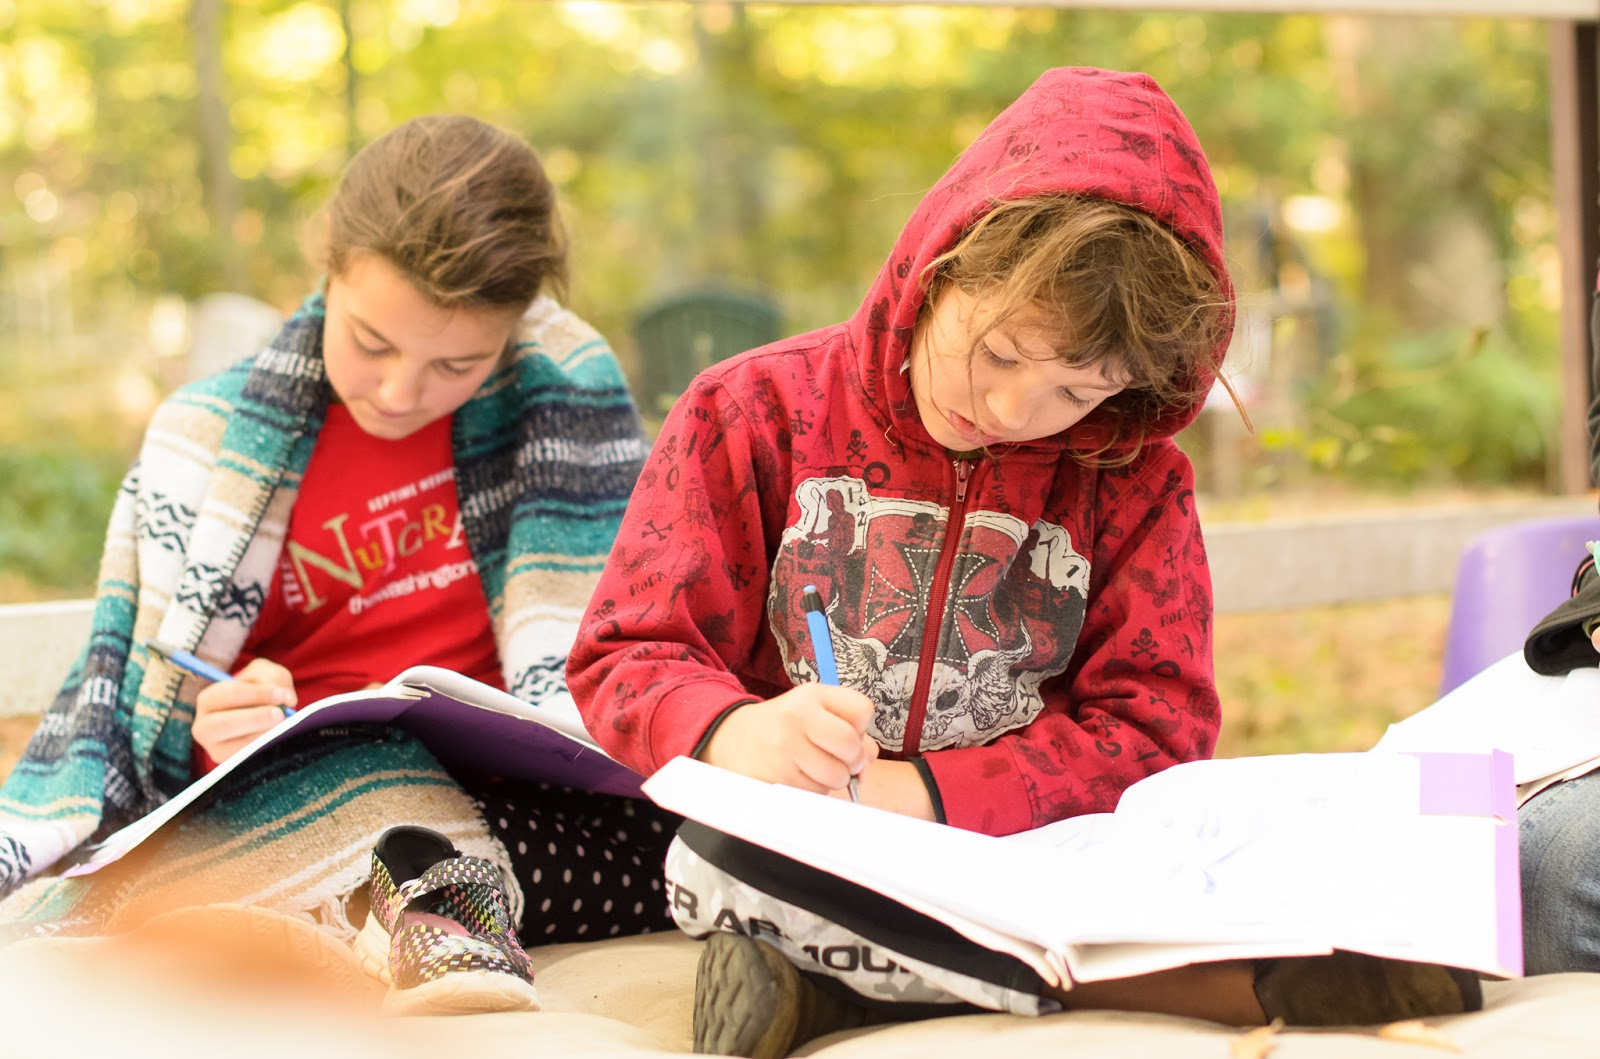 brother and sister writing in homeschooling lesson outside  ©Diana Sherblom Photography